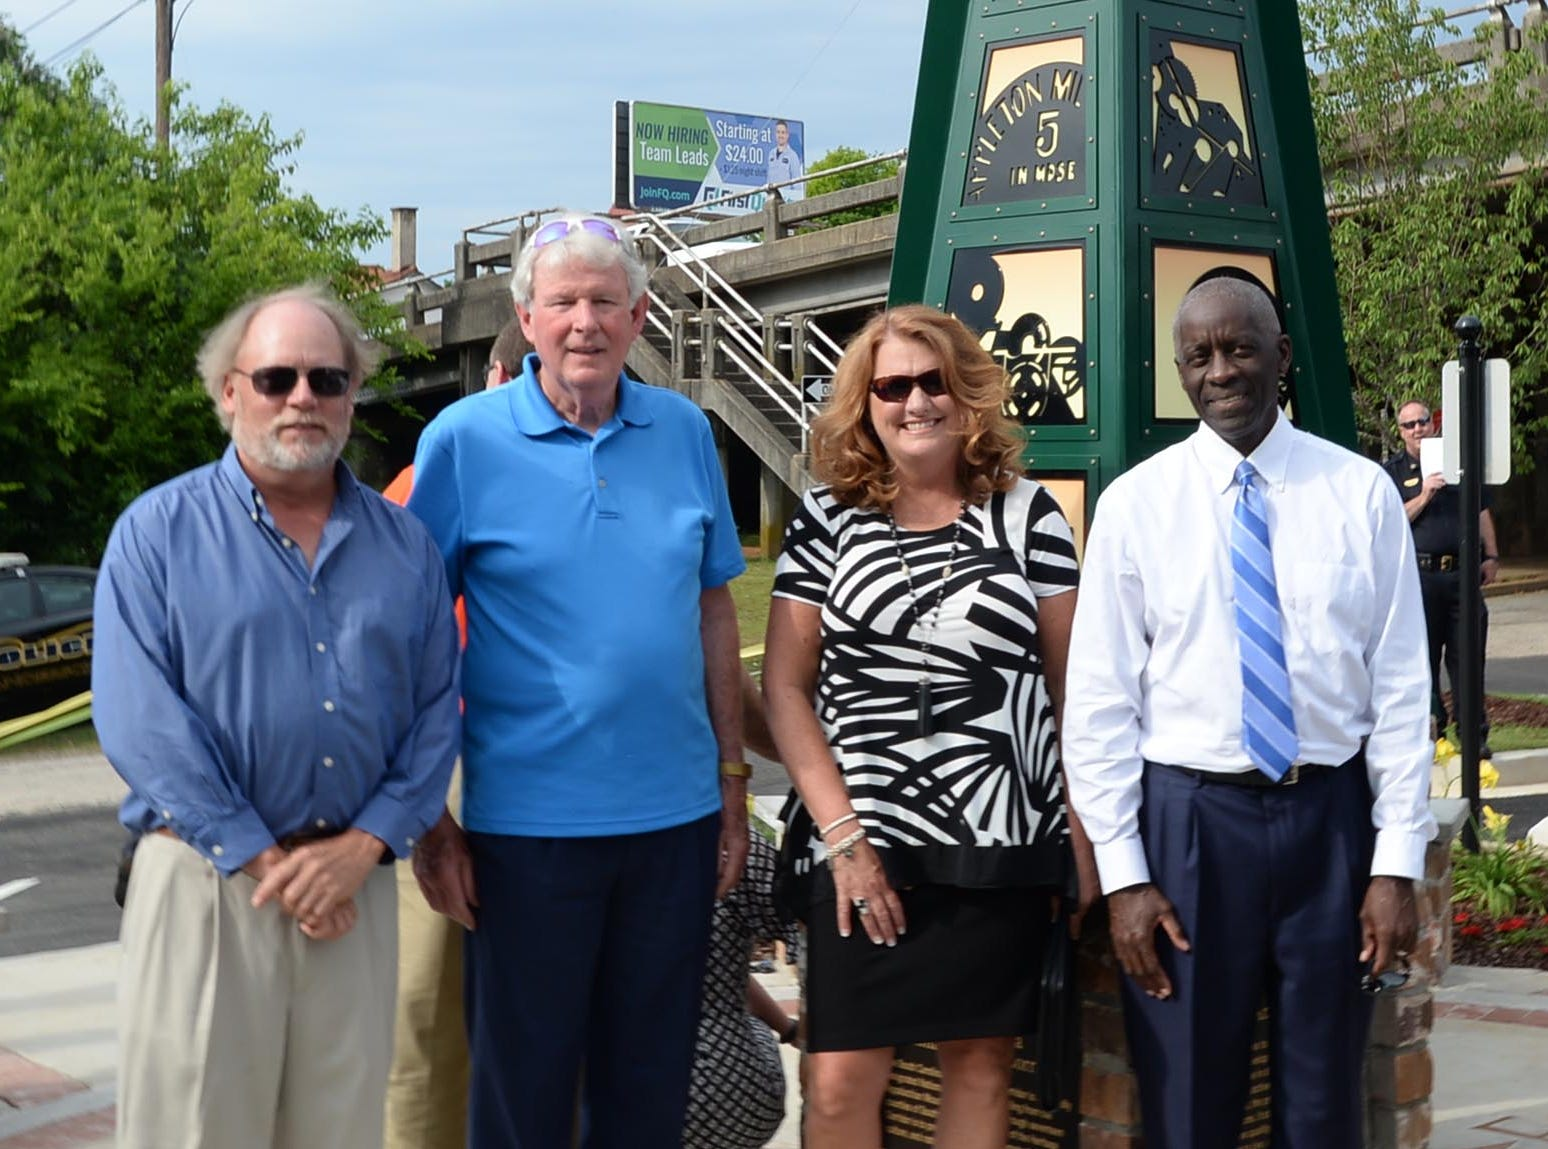 Designer Scott Foster, left, John Miller, Jr., Kimberly Spears , Anderson Economic Director, and Mayor Terence Roberts after helping unveil the Textile Point monument in downtown Anderson Thursday, May 9, 2019. Scott Foster of Anderson designed the monument honoring years of textile mills in Anderson, with support partners from To Benefit Anderson, South Carolina Heritage Corridor, the Rotary Club of Anderson, and the City of Anderson.